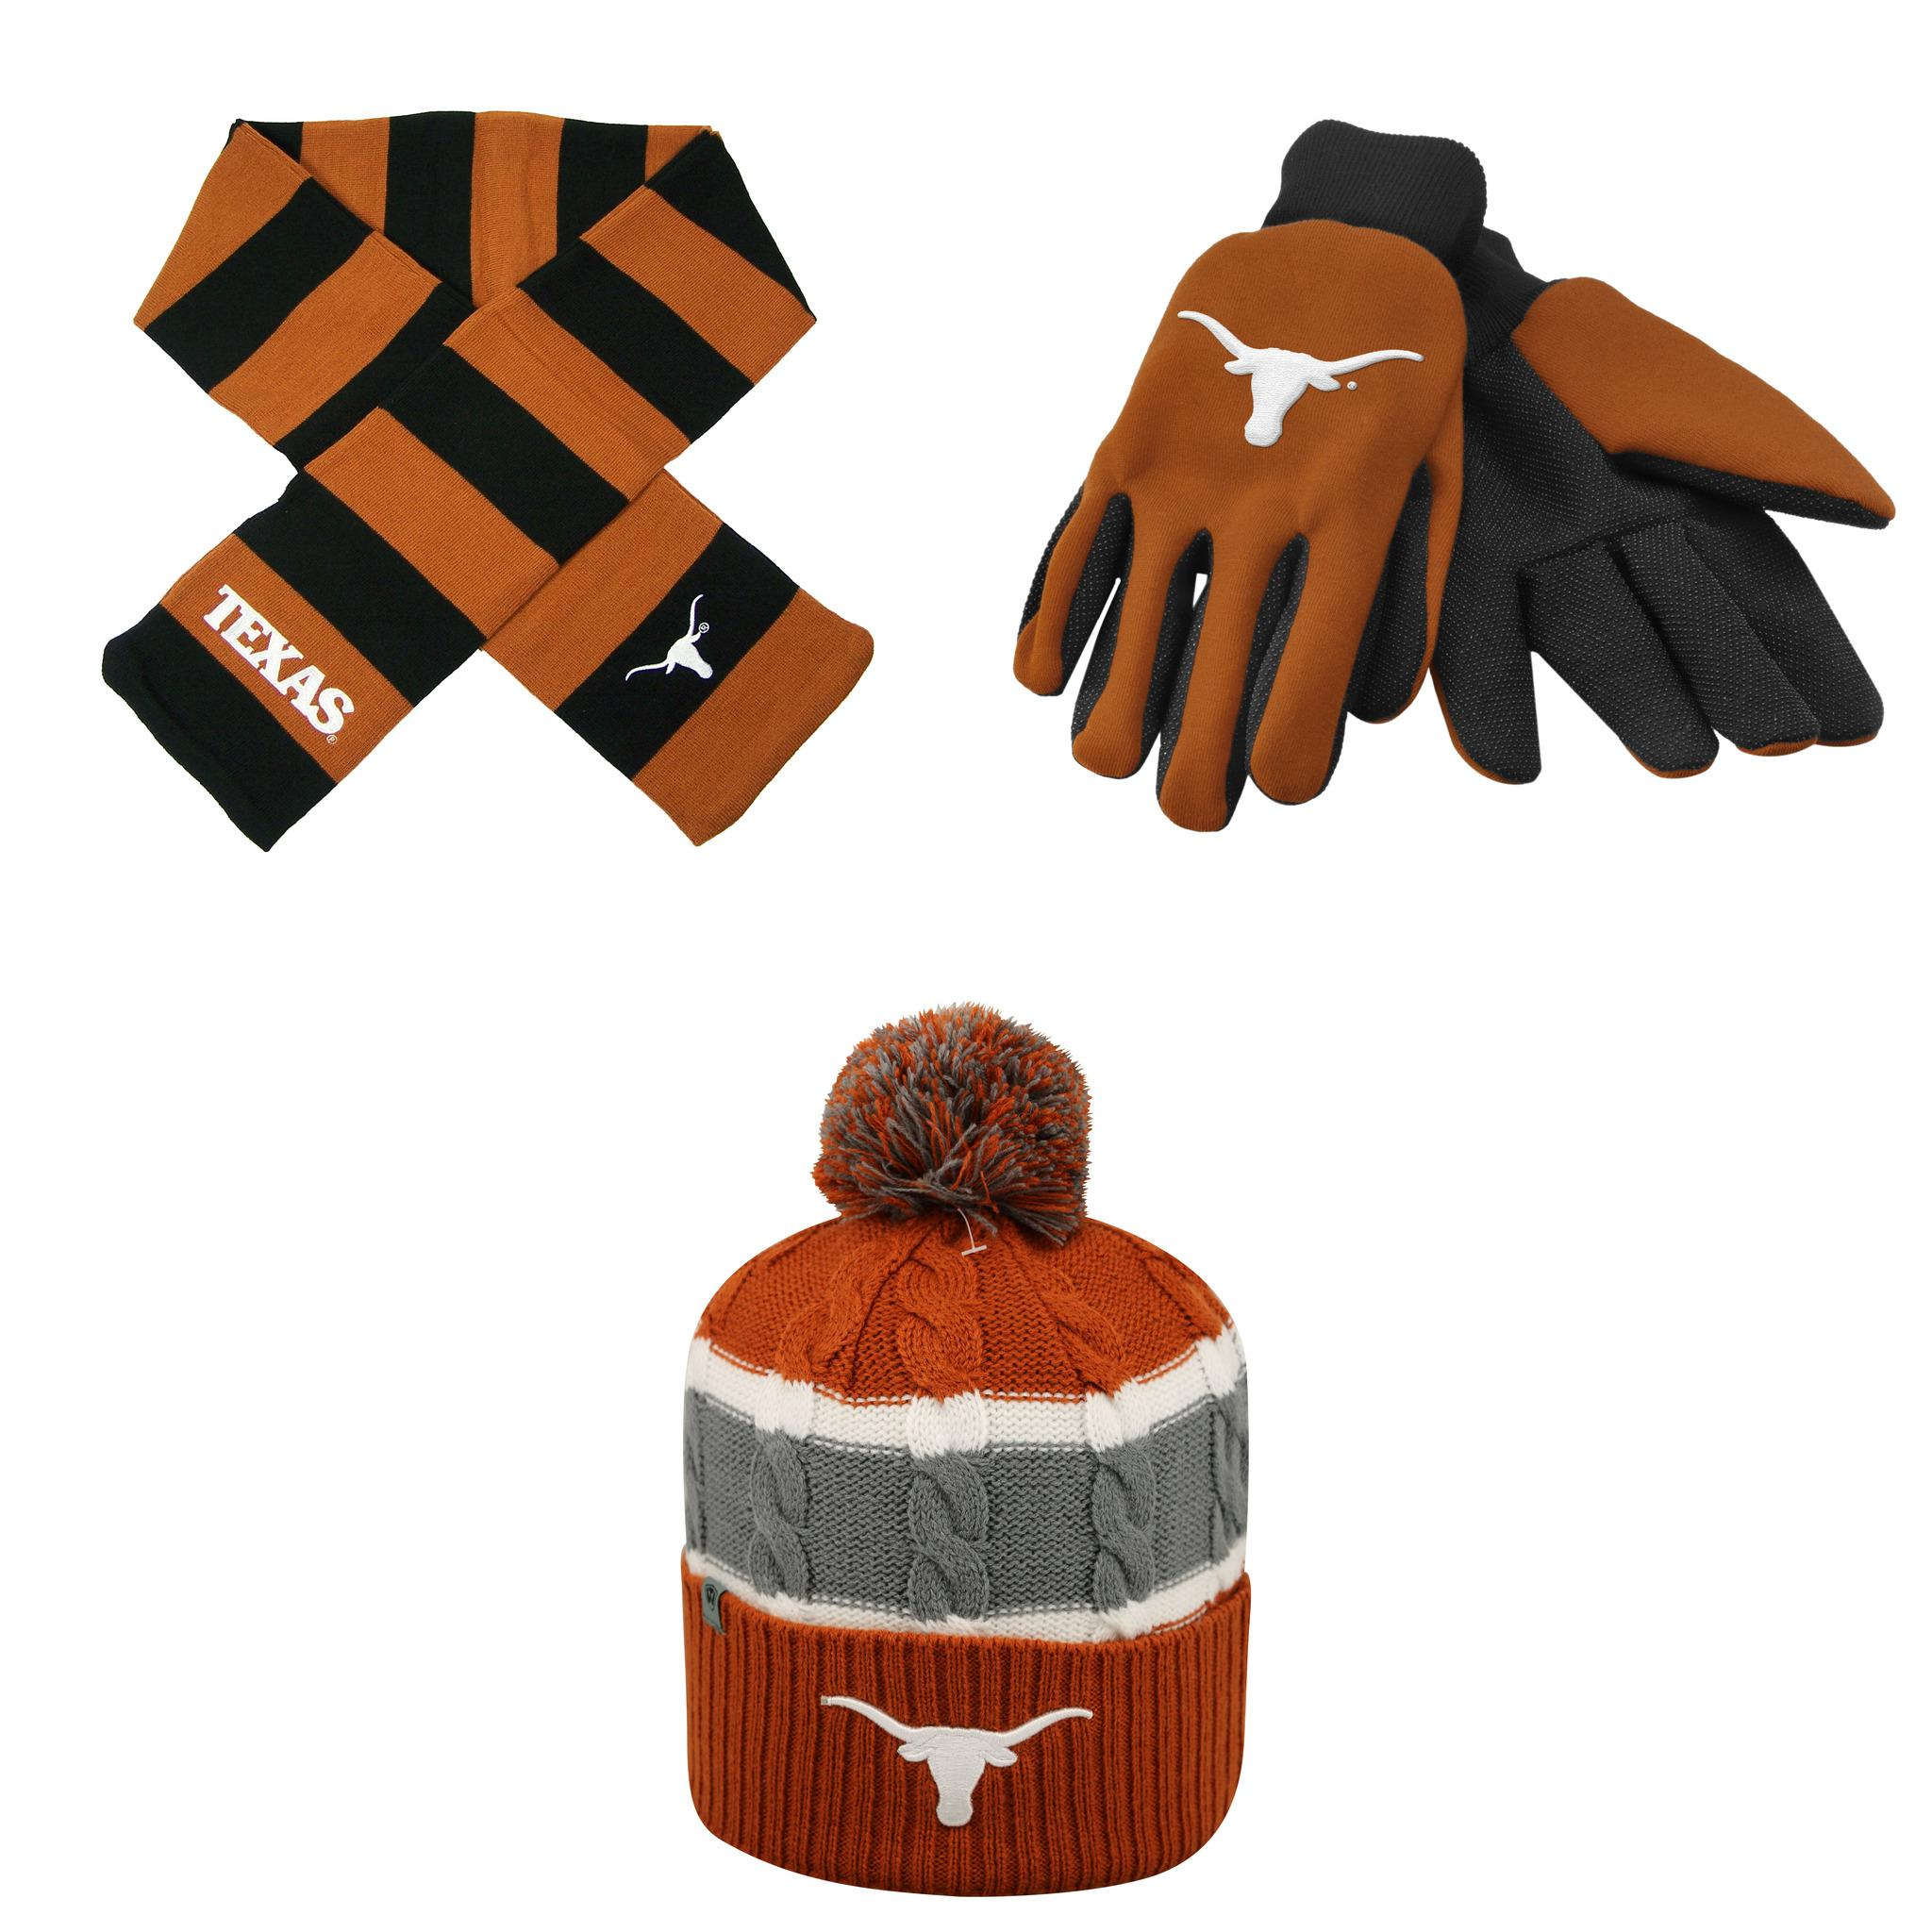 NCAA Texas Longhorns Grip Work Glove Windy Beanie Hat And Striped Rugby Scarf 3 Pack Bundle